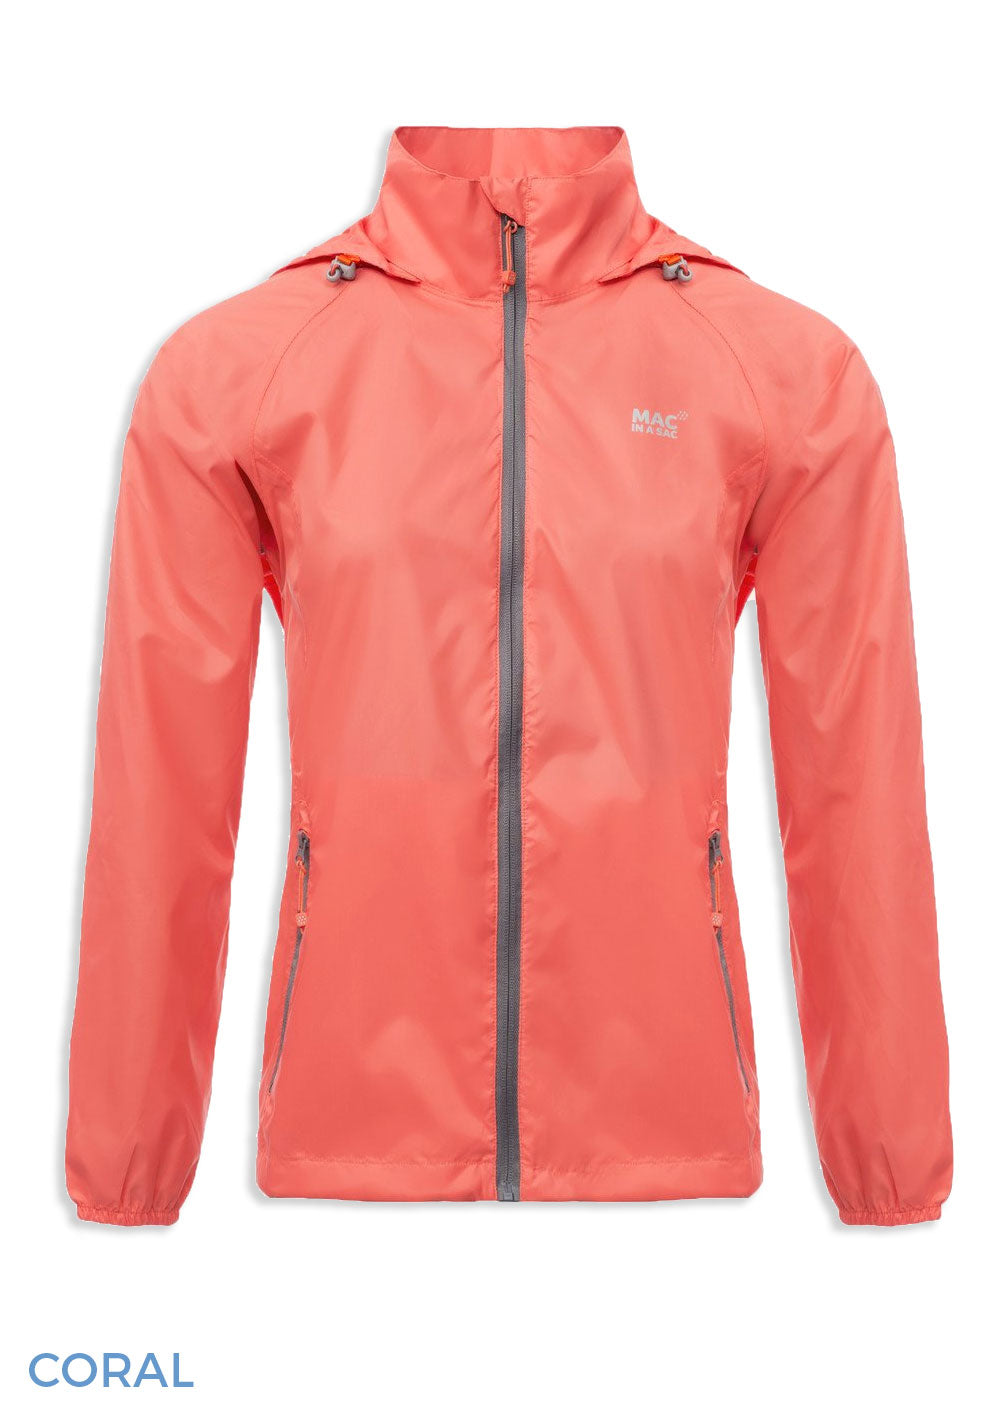 Coral Packaway Waterproof Jacket by Lighthouse